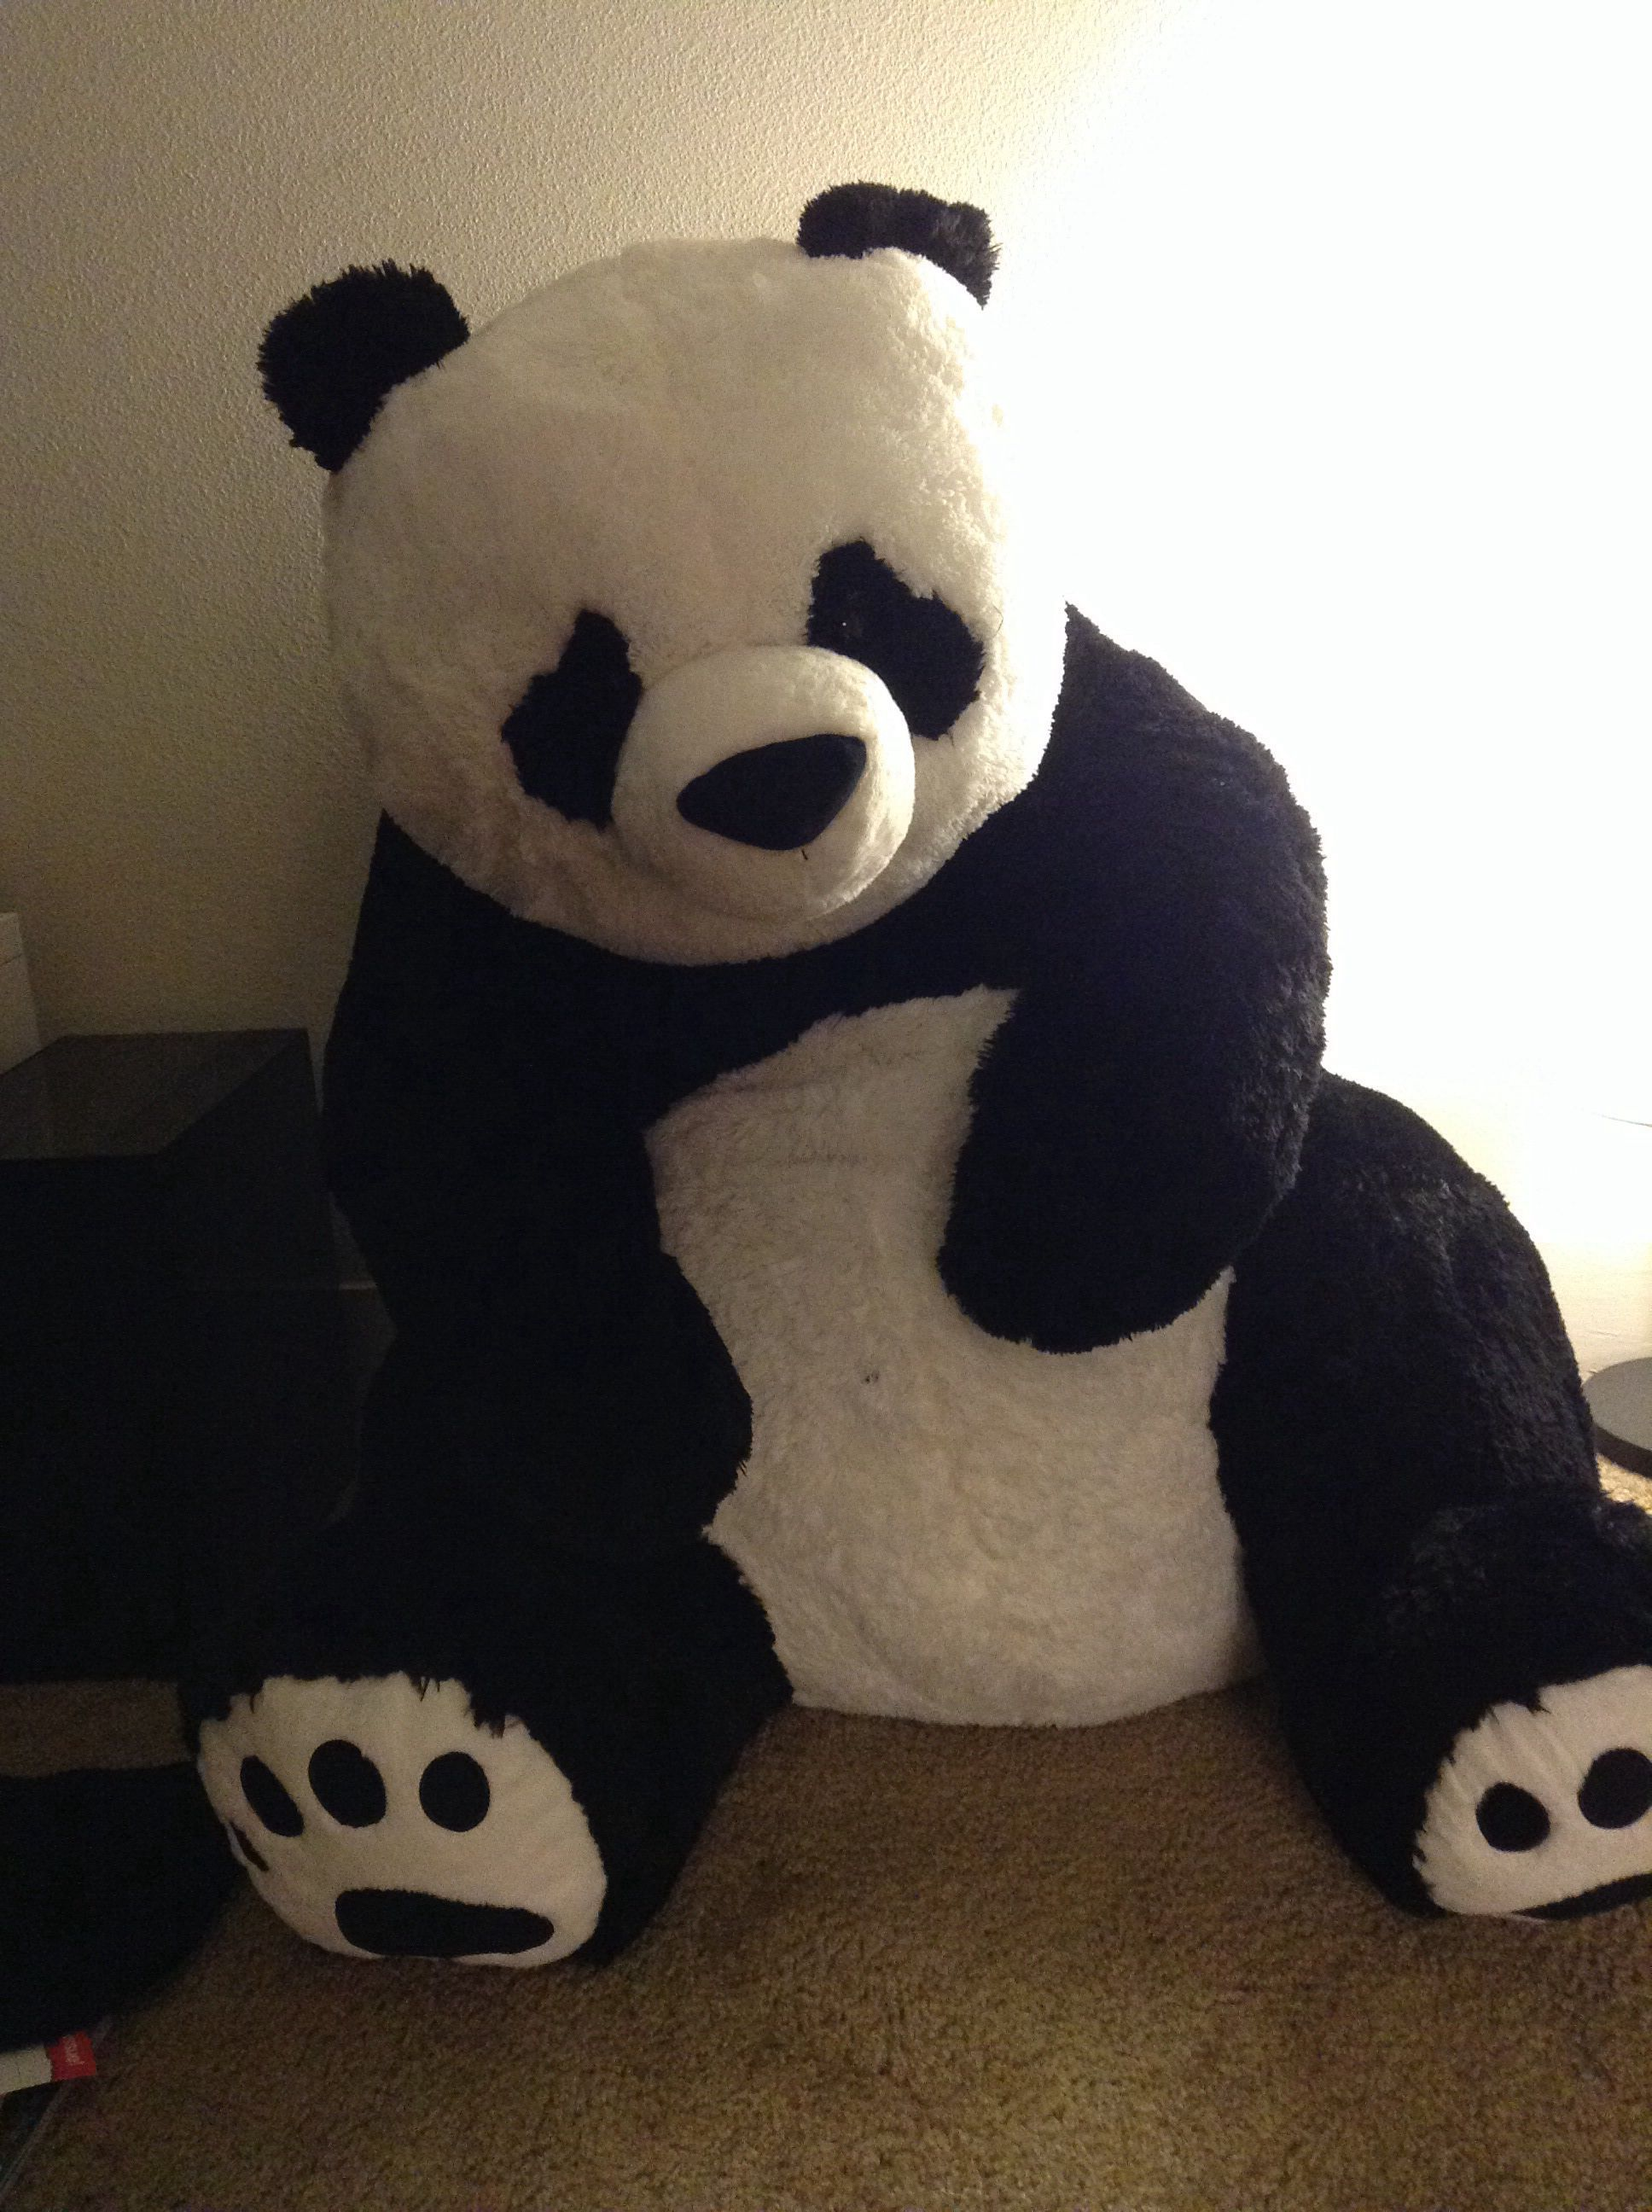 36 Stuffed Panda From Costco Love It Pinterest Panda Panda